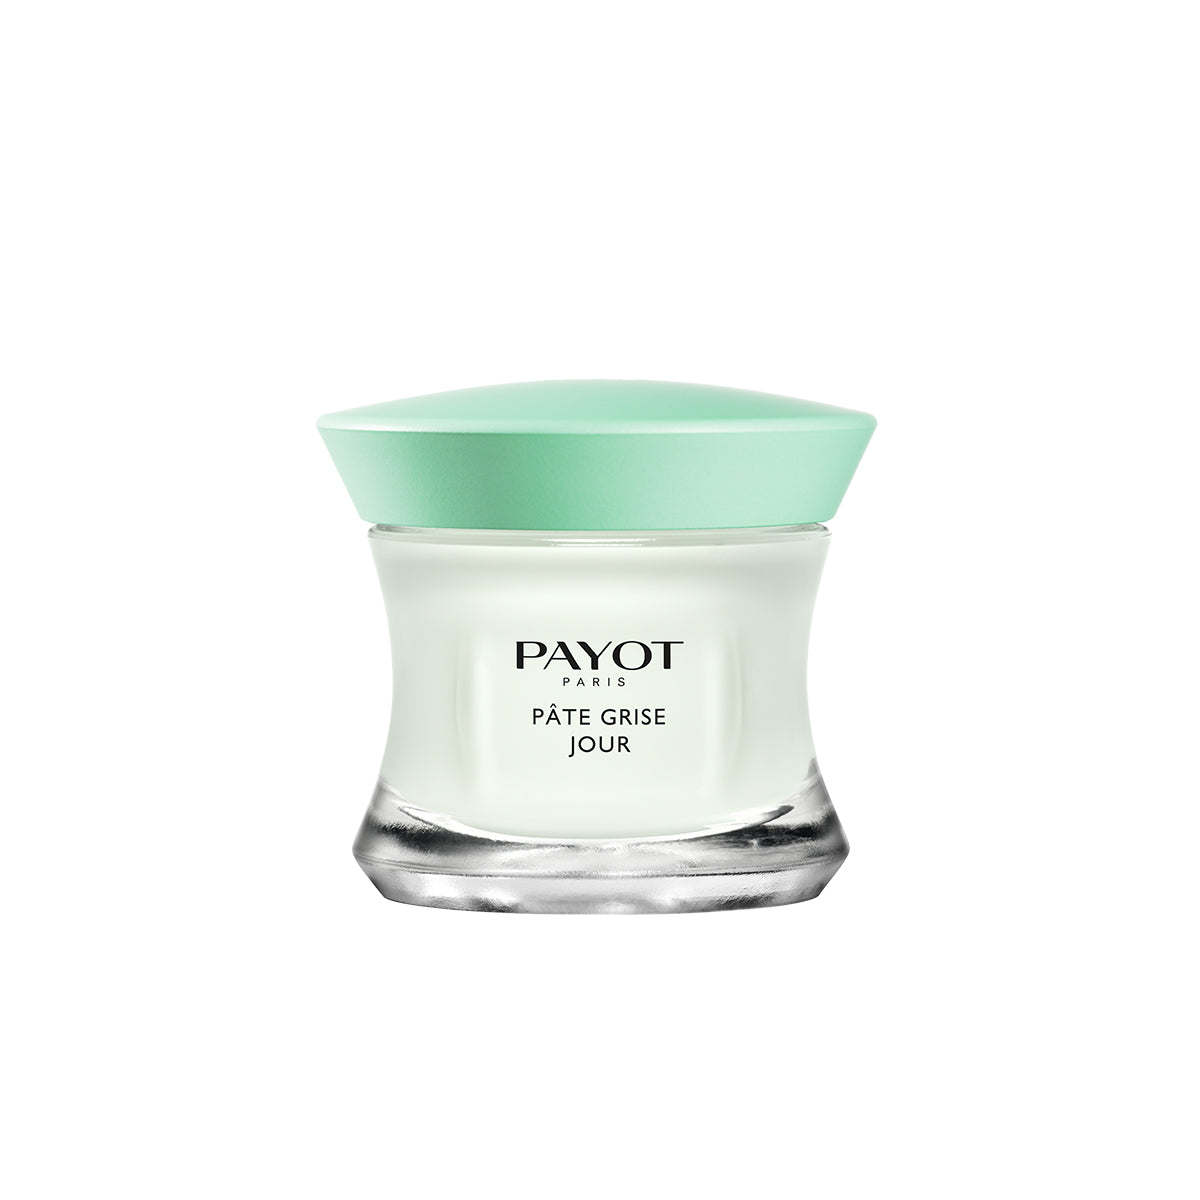 Payot Pate Grise Day Cream